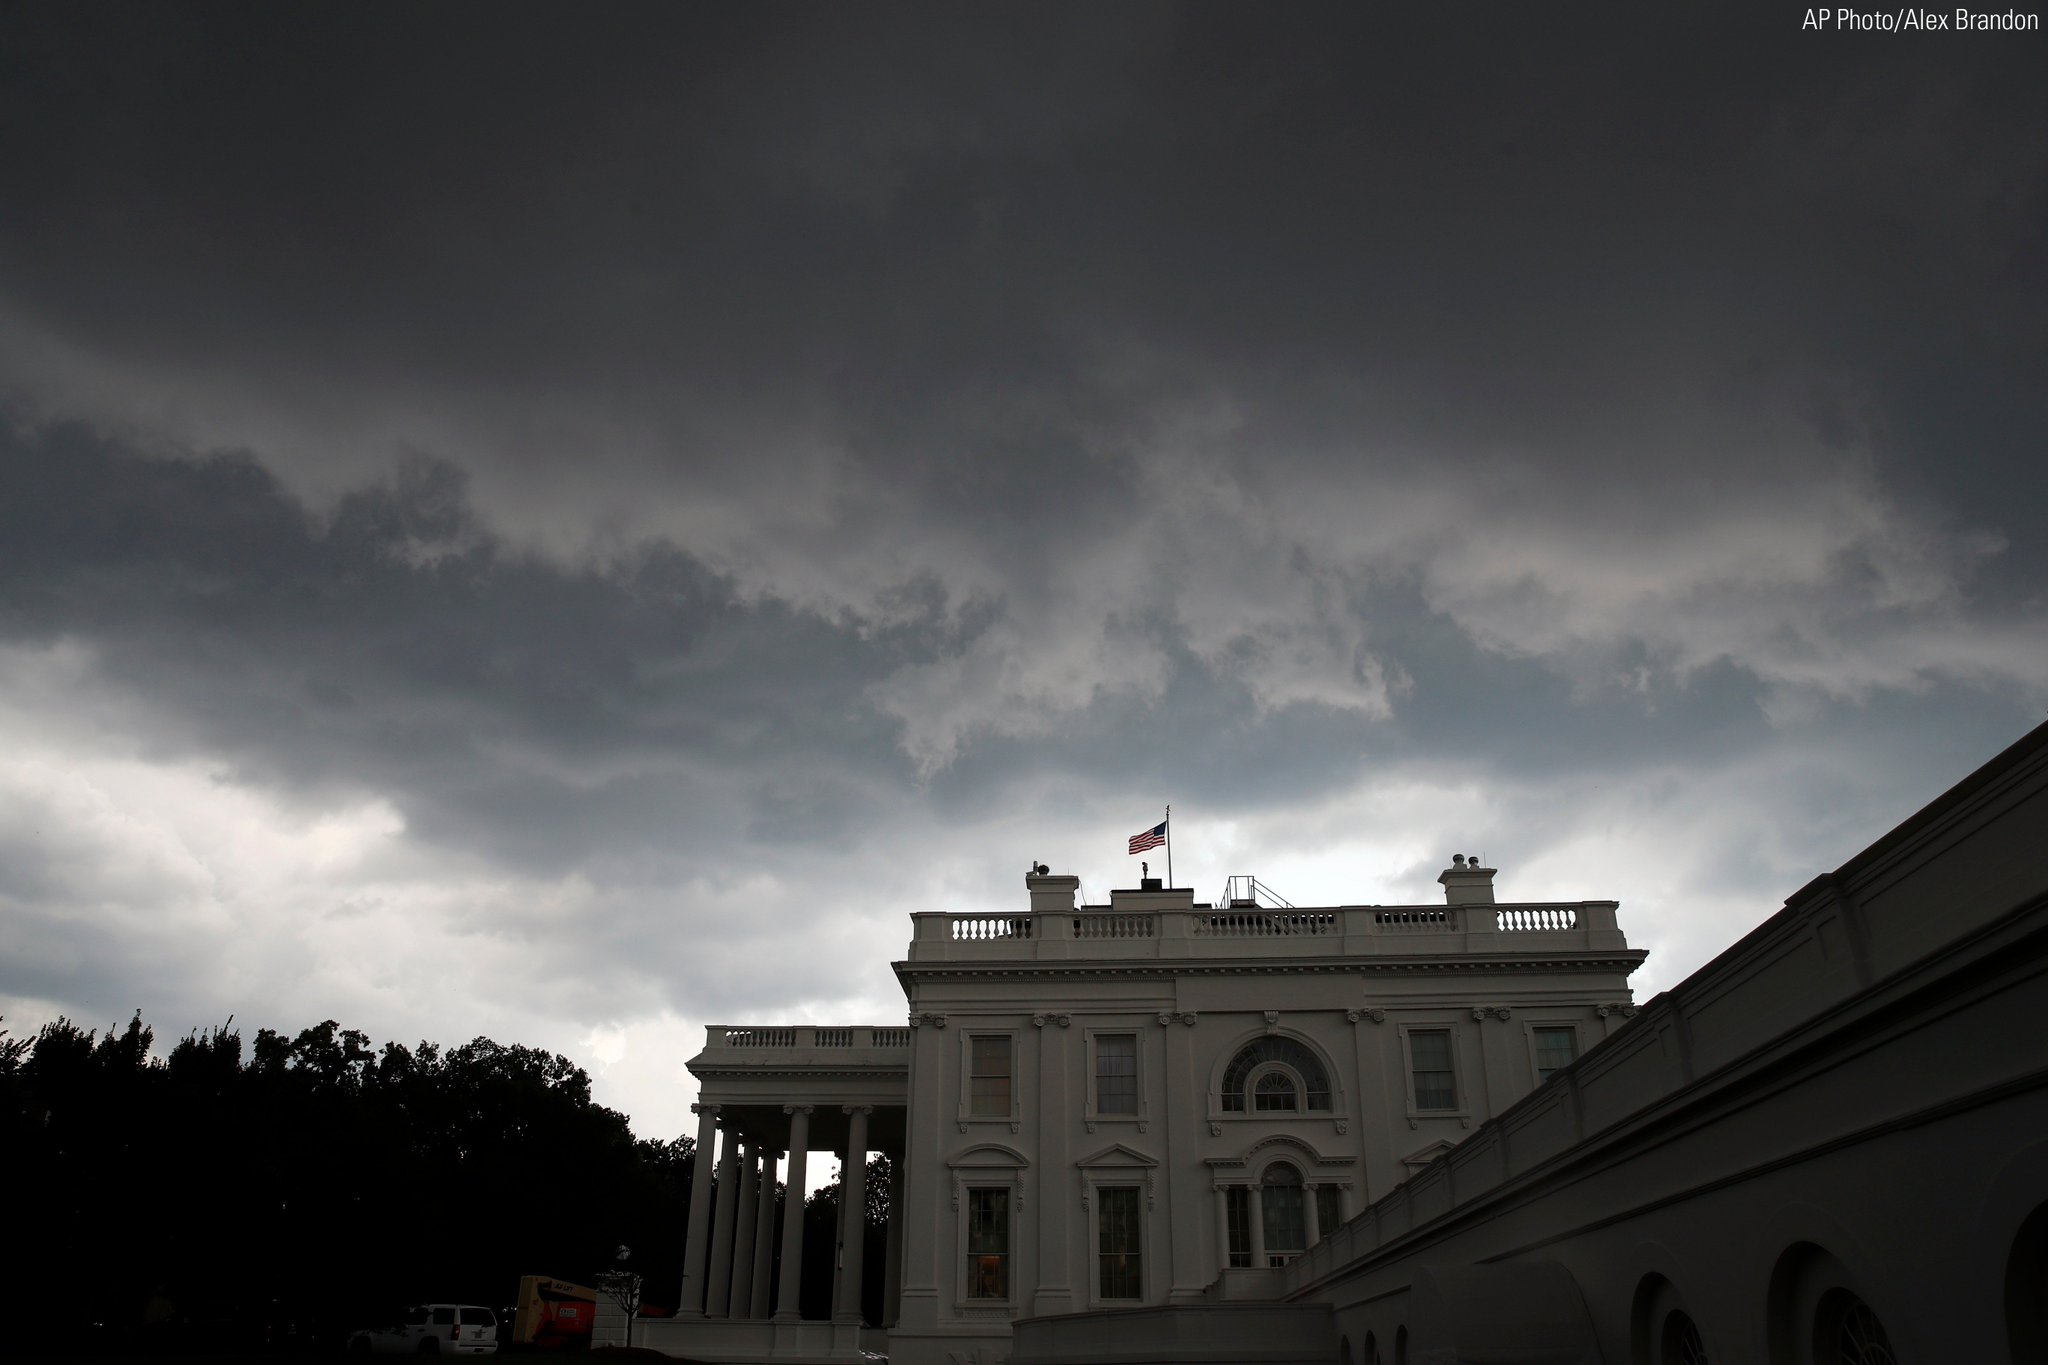 Storm clouds move above the @WhiteHouse as rain moves into the area on Monday. https://t.co/NmvPPfVVzb